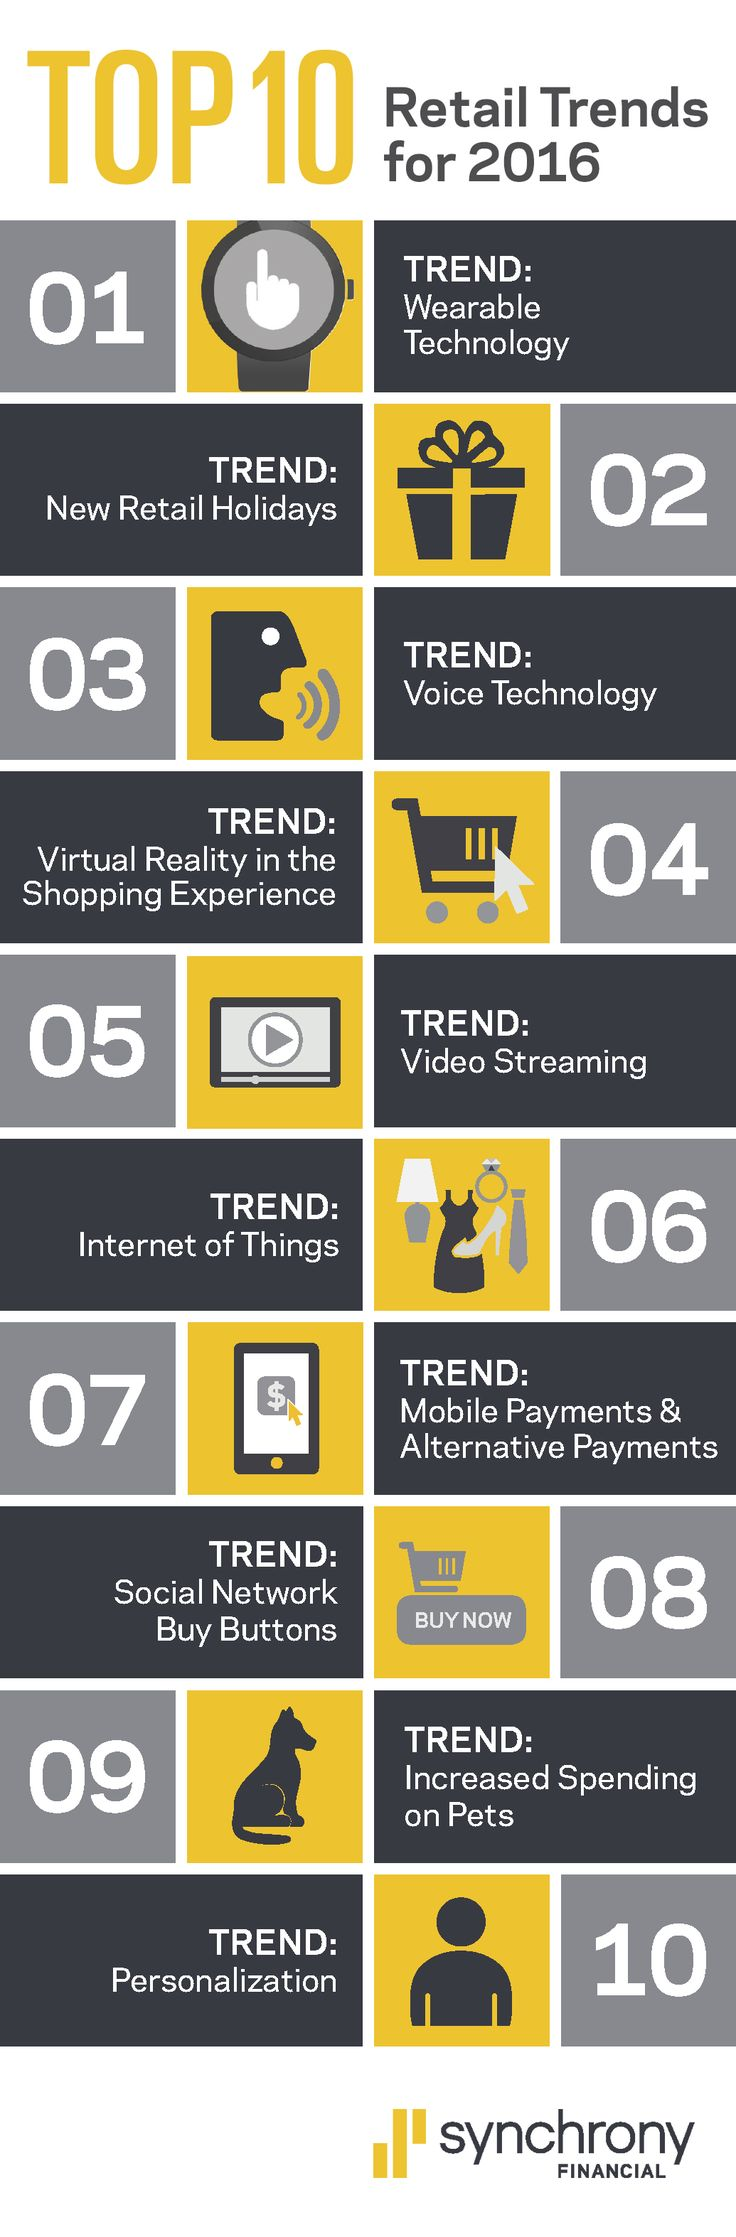 Technology Influences Eight of the Top 10 Retail Trends for 2016. Synchrony Financial examines changes empowering consumers and impacting shopping, payments and retail sales. (Graphic: Business Wire)